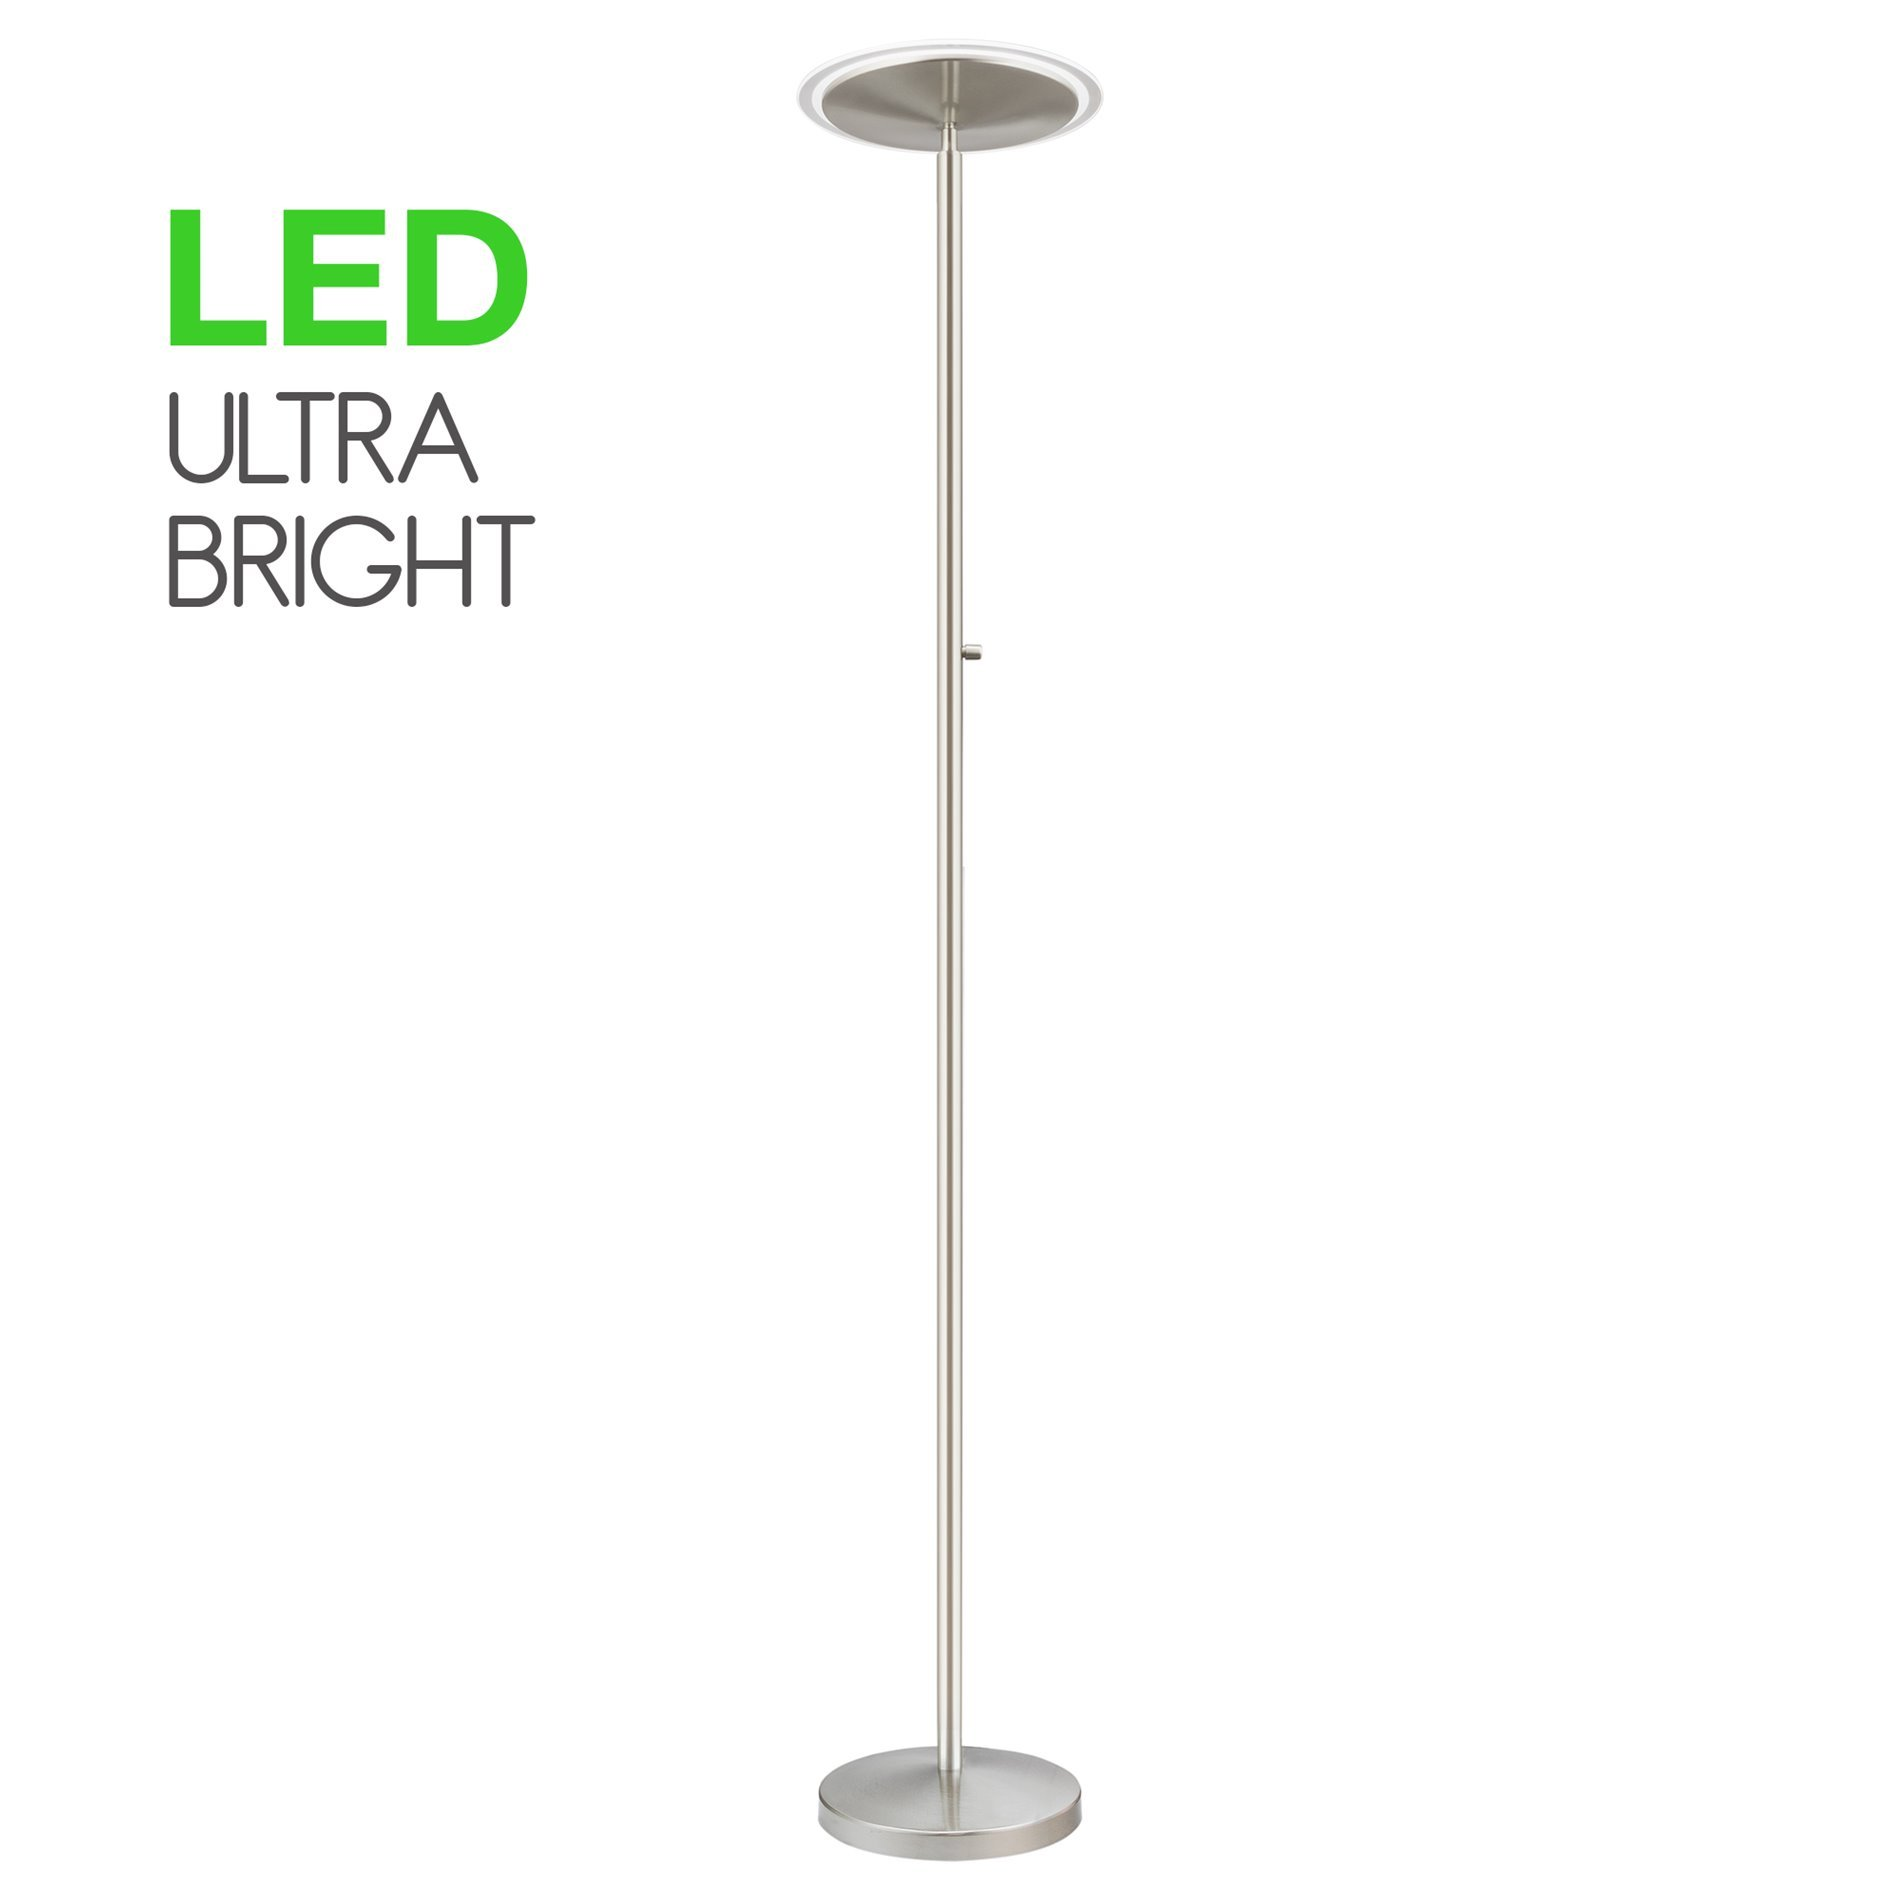 Kira Home Horizon 70'' Modern LED Torchiere Floor Lamp (36W, 300W eq.), Glass Diffuser, Dimmable, Timer and Wall Switch Compatible, Adjustable Head, 3000k Warm White Light, Brushed Nickel Finish